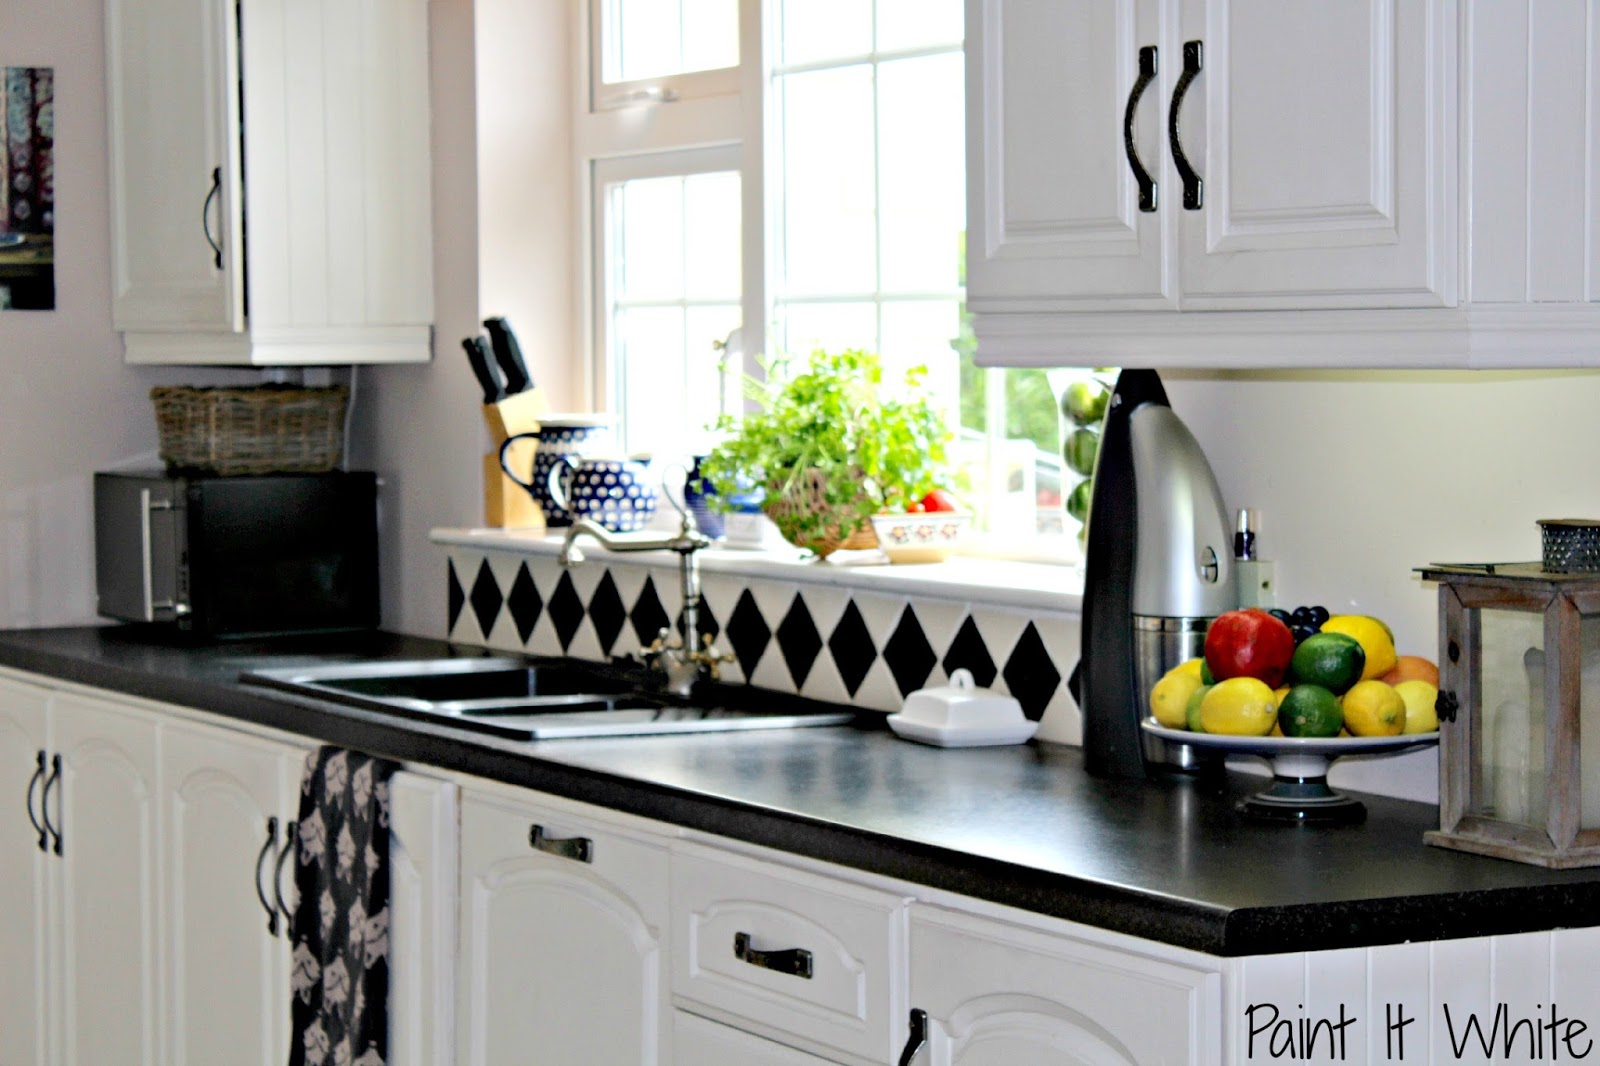 Bon 1 Chalk Painted Cabinets In Rustic White Kitchen, Paint It White Featured  On @Remodelaholic